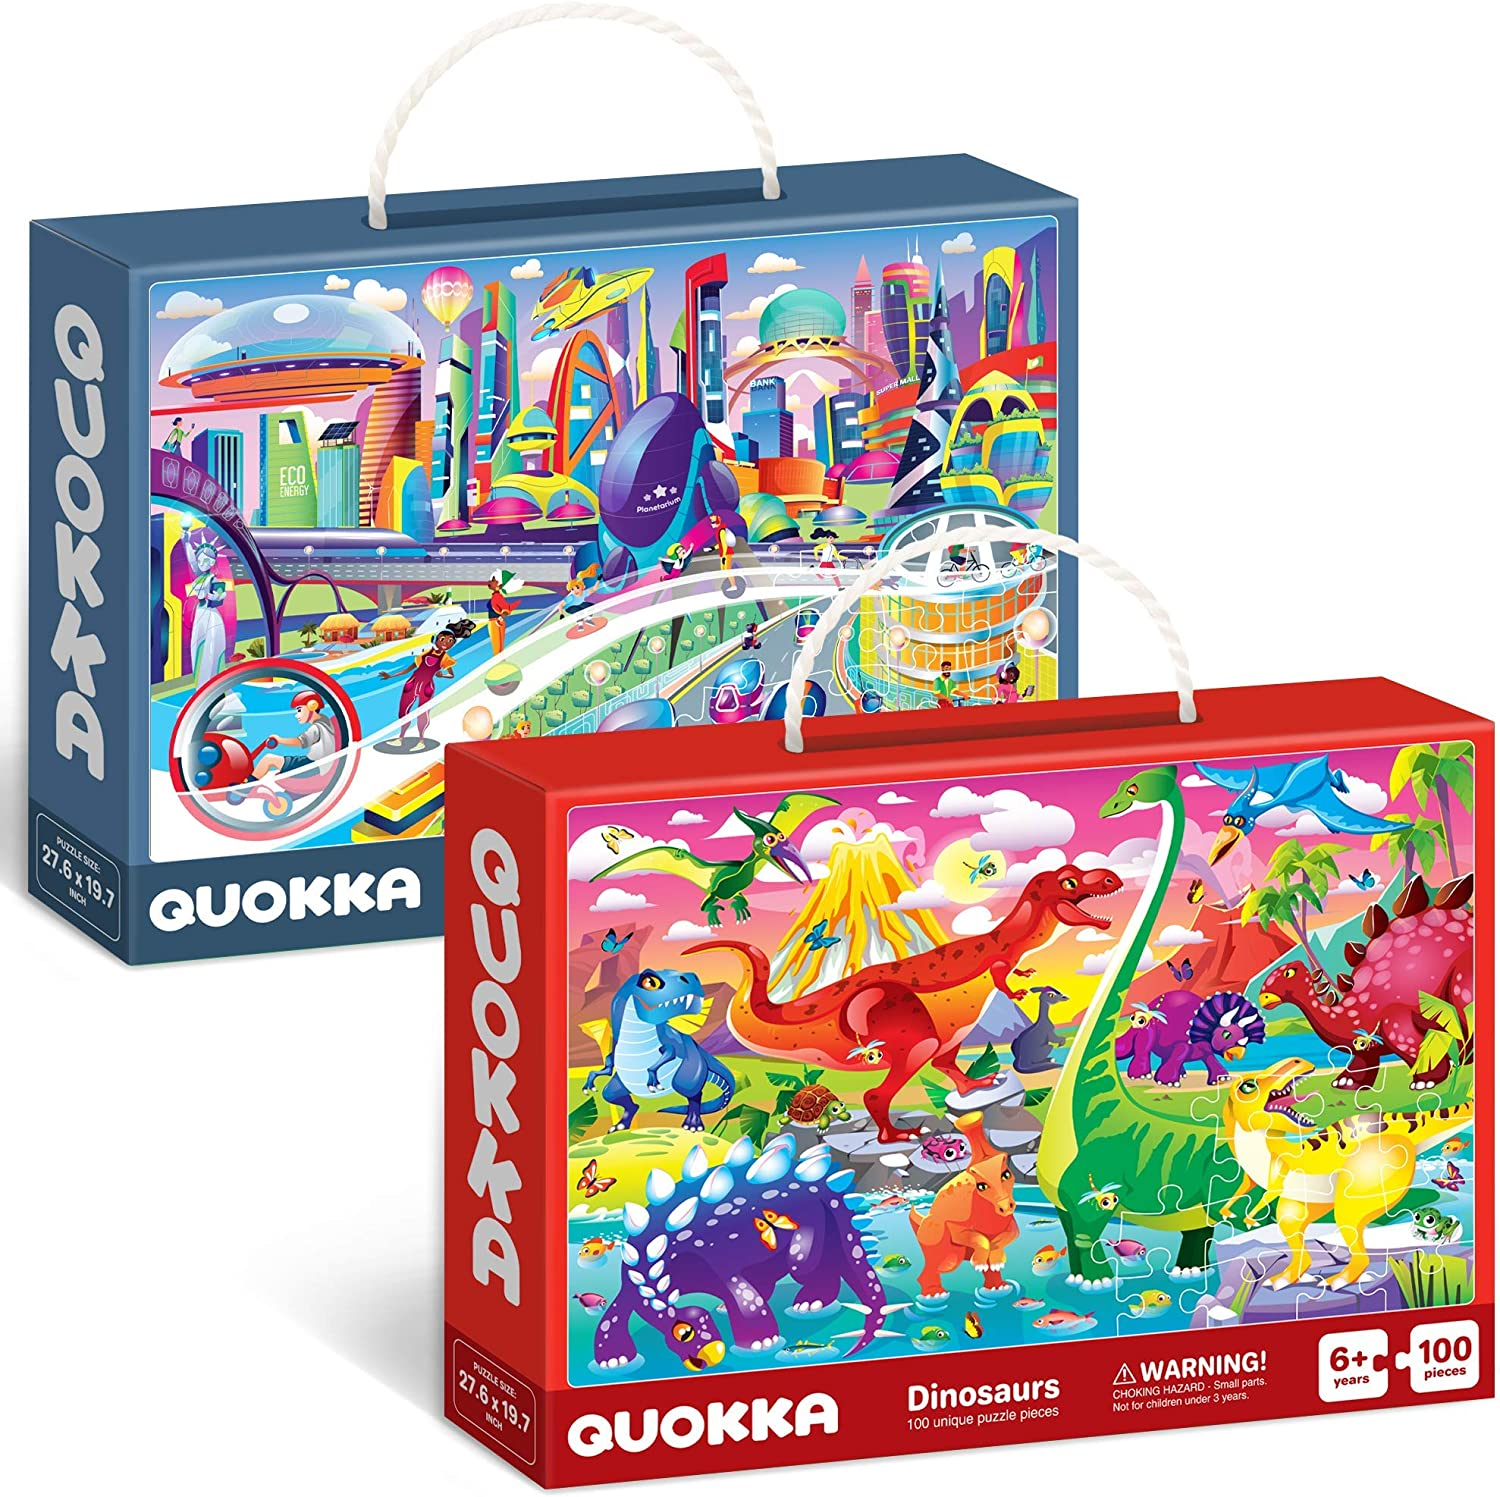 100 Pieces Floor Puzzles for Kids Ages 4-8 by Quokka Gift Games for Boys and Girl Ages 6-8-10 2 Jigsaw Puzzles with Dinosaurs for Toddlers Ages 3-5 Toys for Learning Dinos /& Future City Life